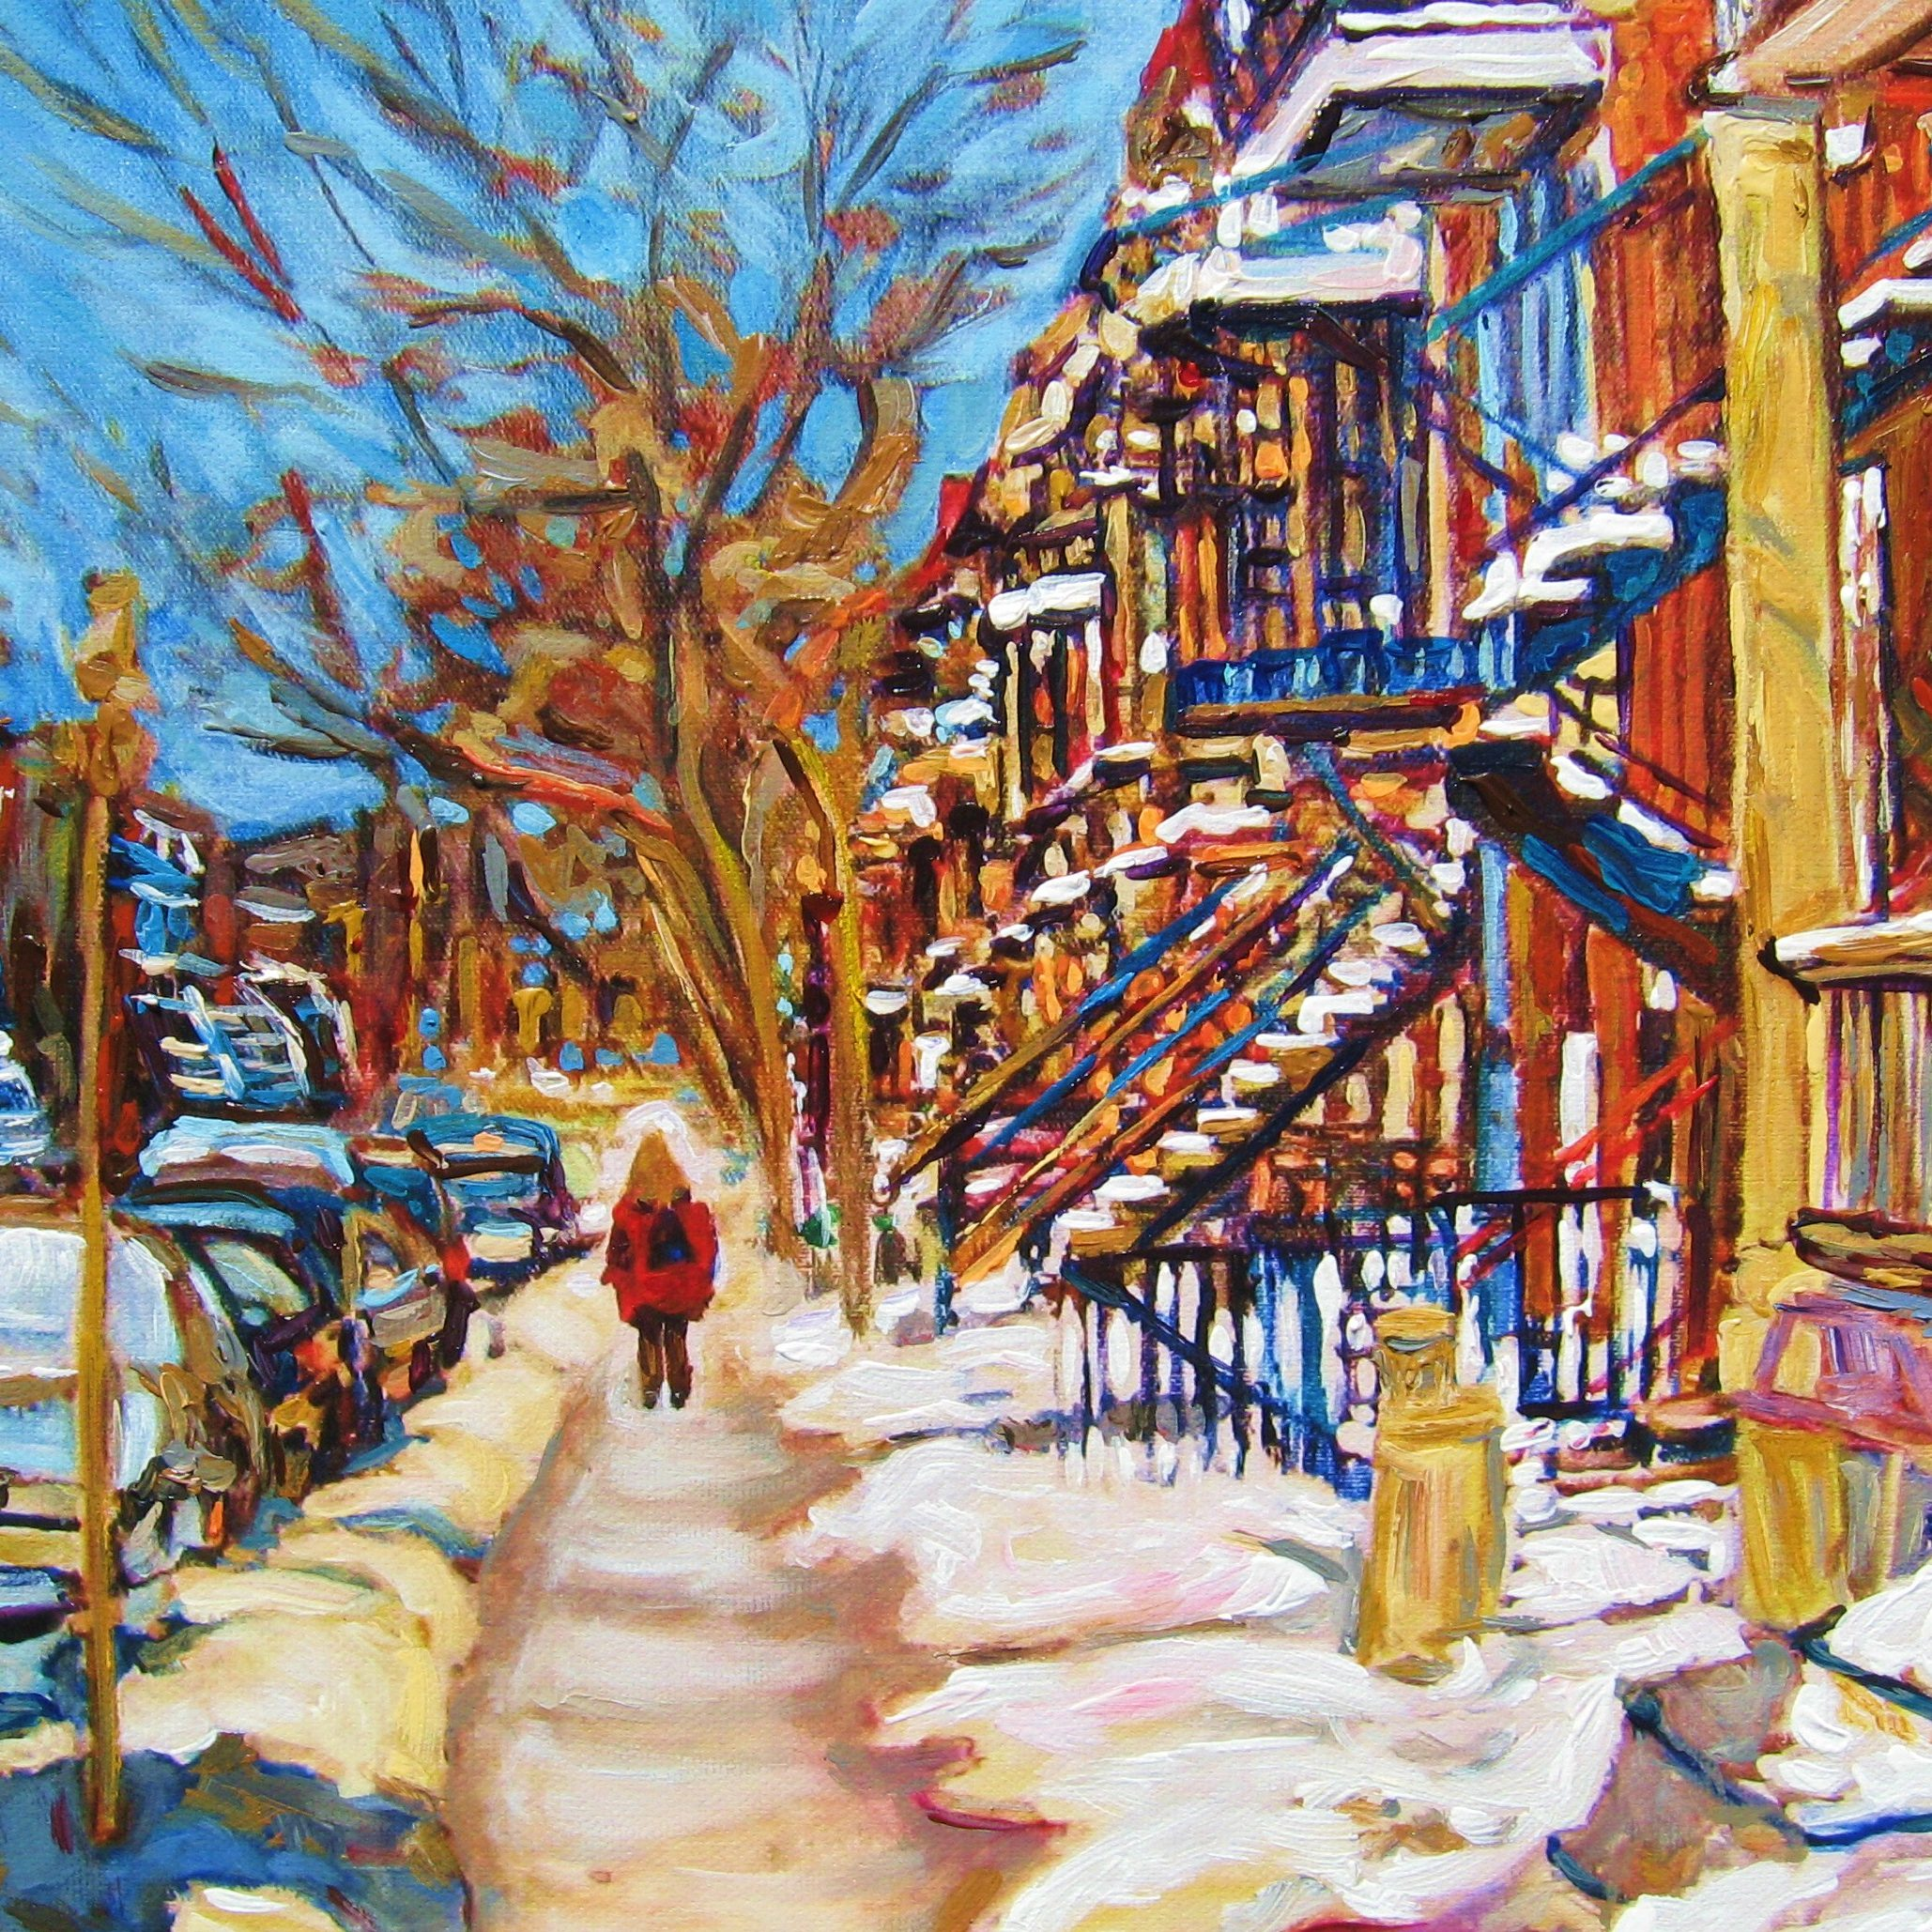 Snow, Hockey and Local Shops: Charming Montréal Street Scenes by Carole Spandau